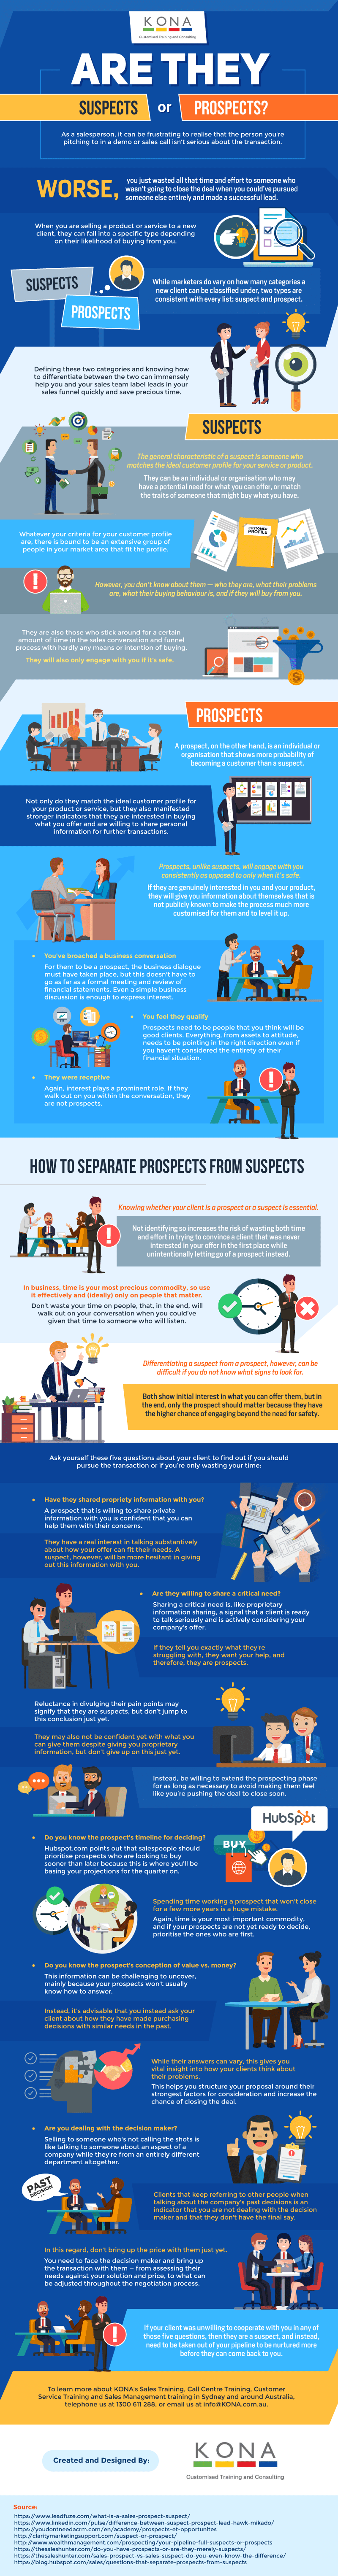 Are They Suspects or Prospects Infographic